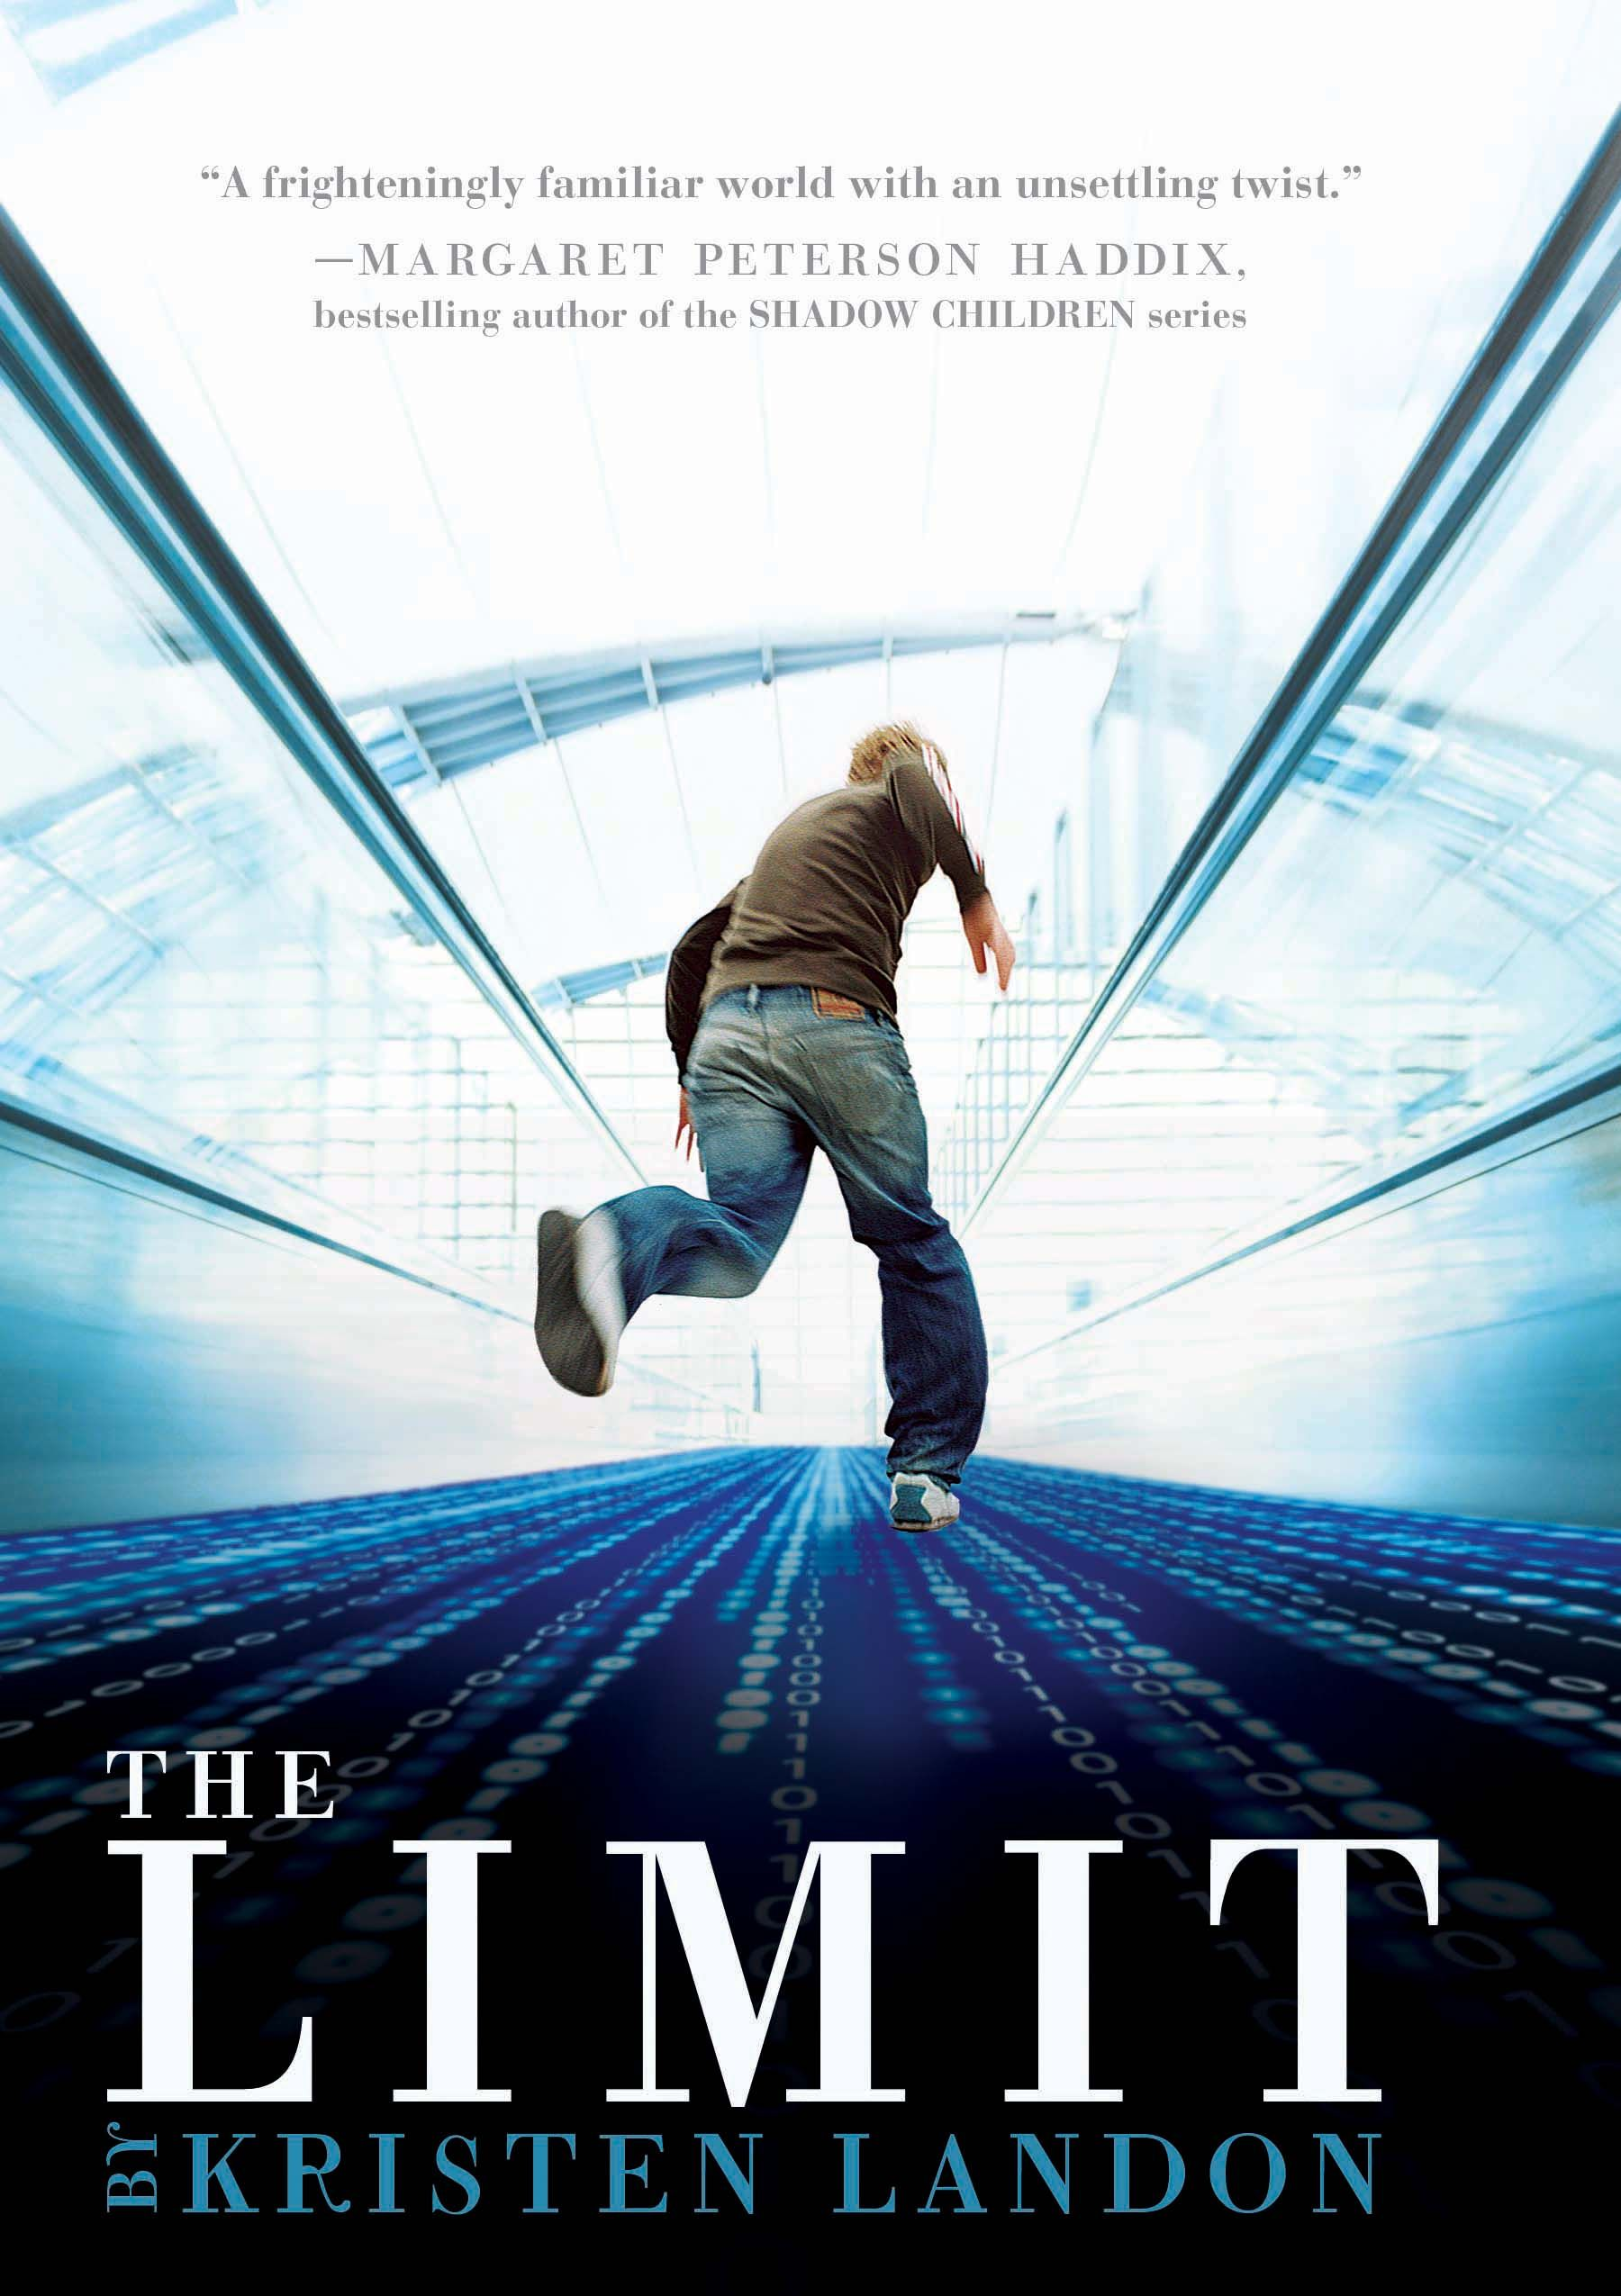 New: The Limit by Kristen Landon. In the not so distant future, when adults get into debt the government takes their children and sends them to special workhouses. This novel follows 13 year old Matt as he navigates his tumultuous new future once he is snatched up by the government due to his parents overspending.